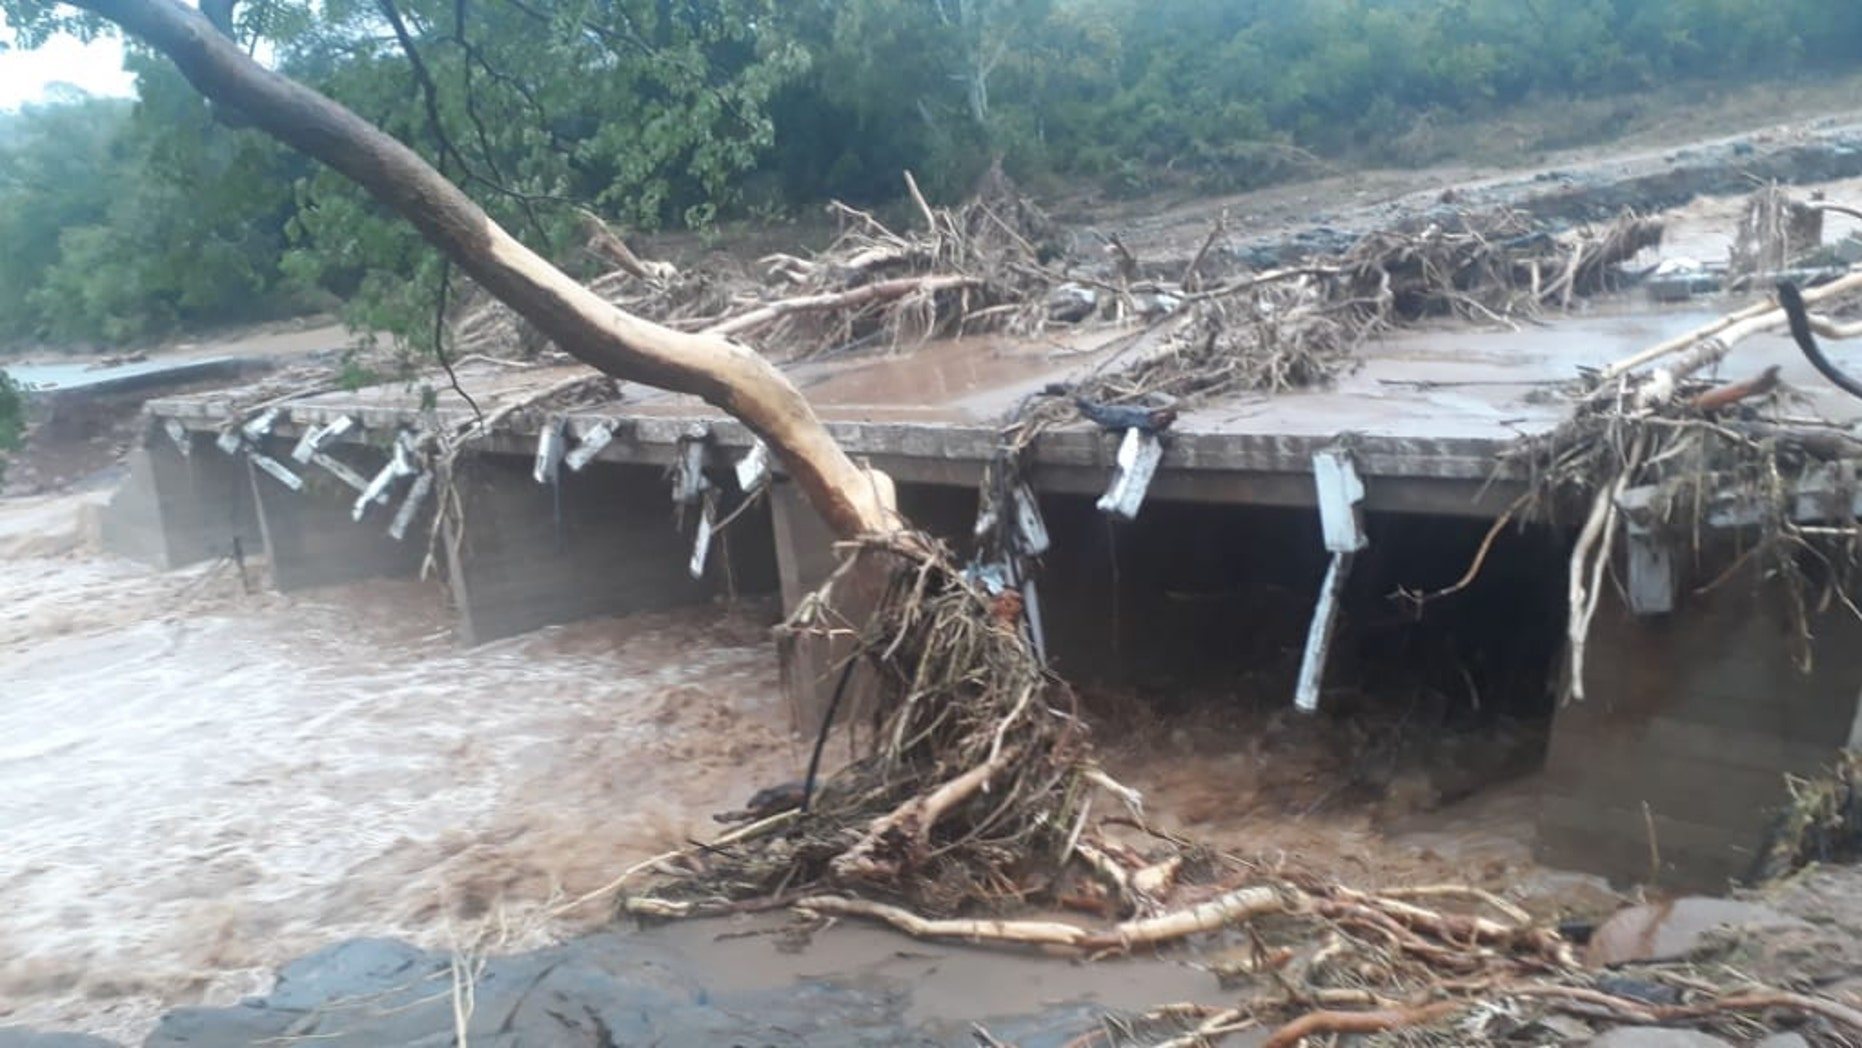 Cyclone Idai has ripped throughMalawi, Mozambique and Zimbabwe, leaving an estimated 140 people dead and hundreds more missing